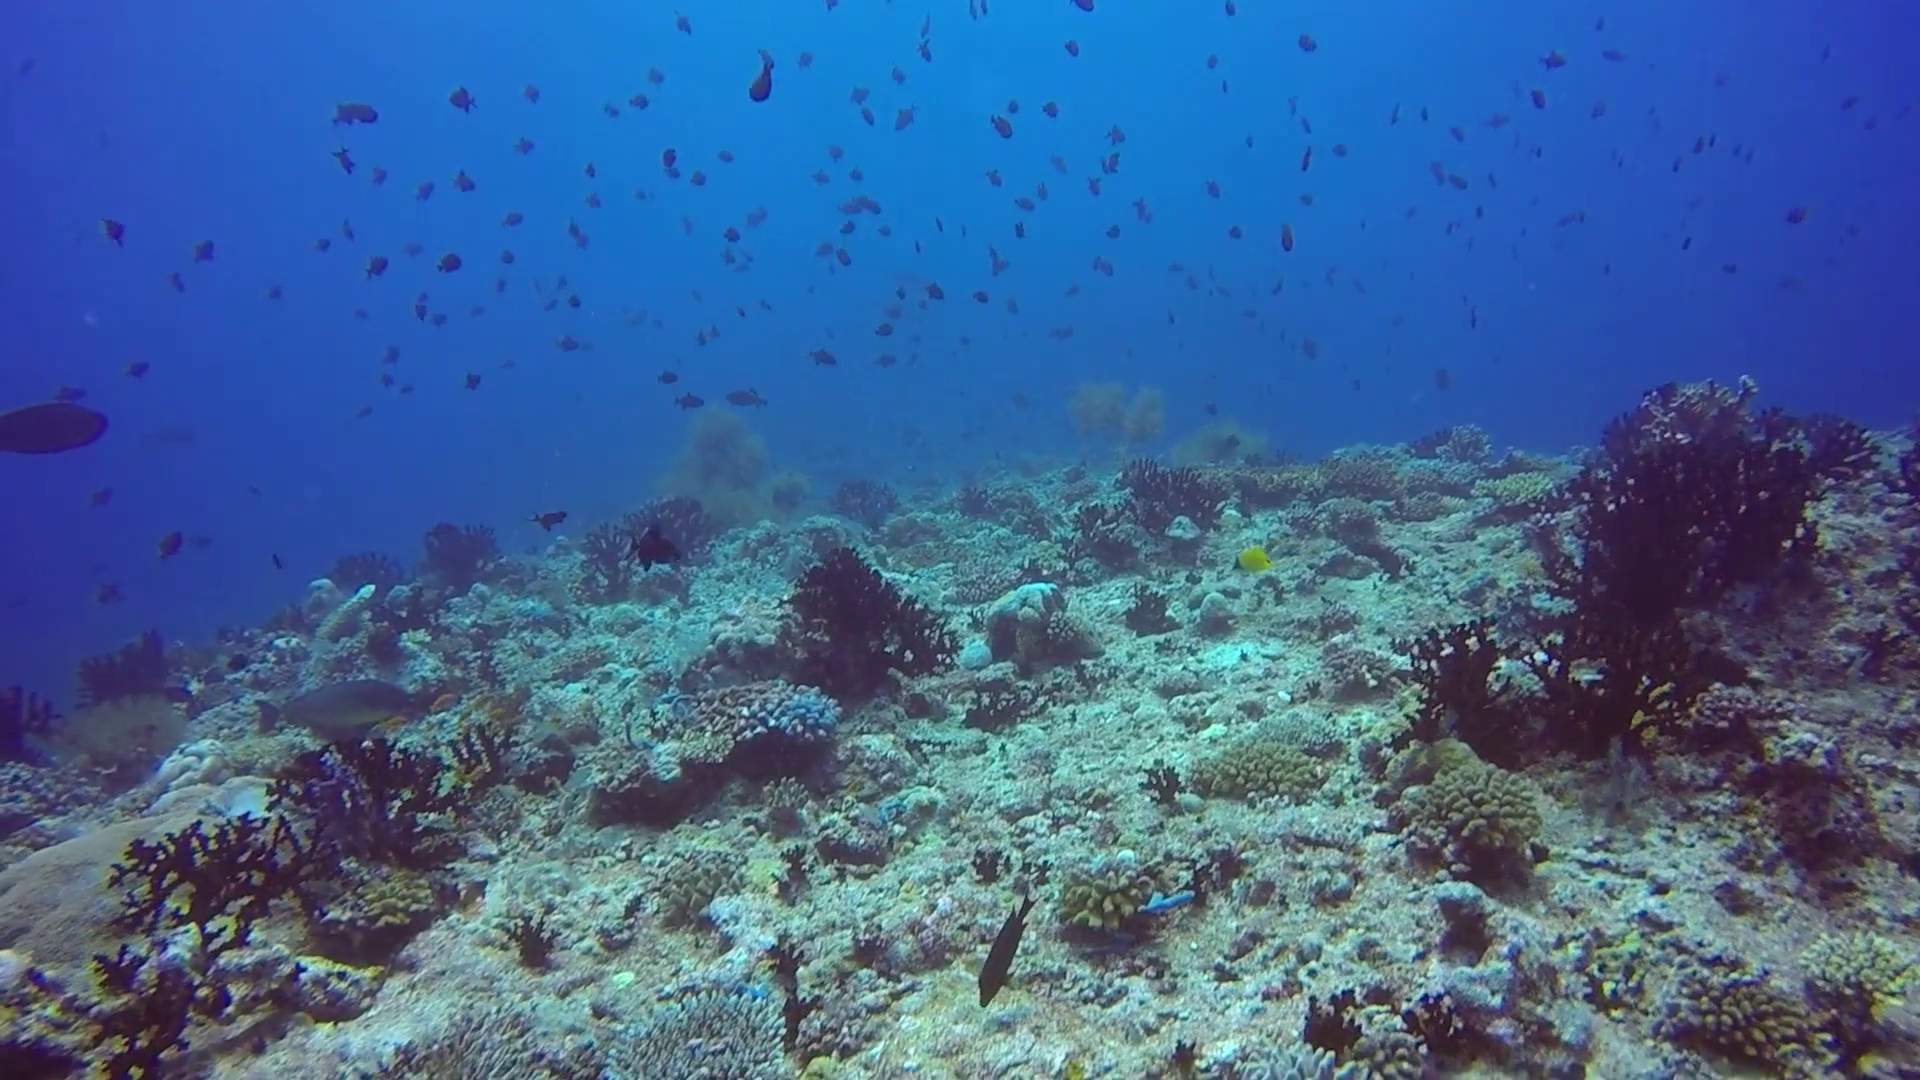 School of fish on background of clear seabed underwater in 1920x1080